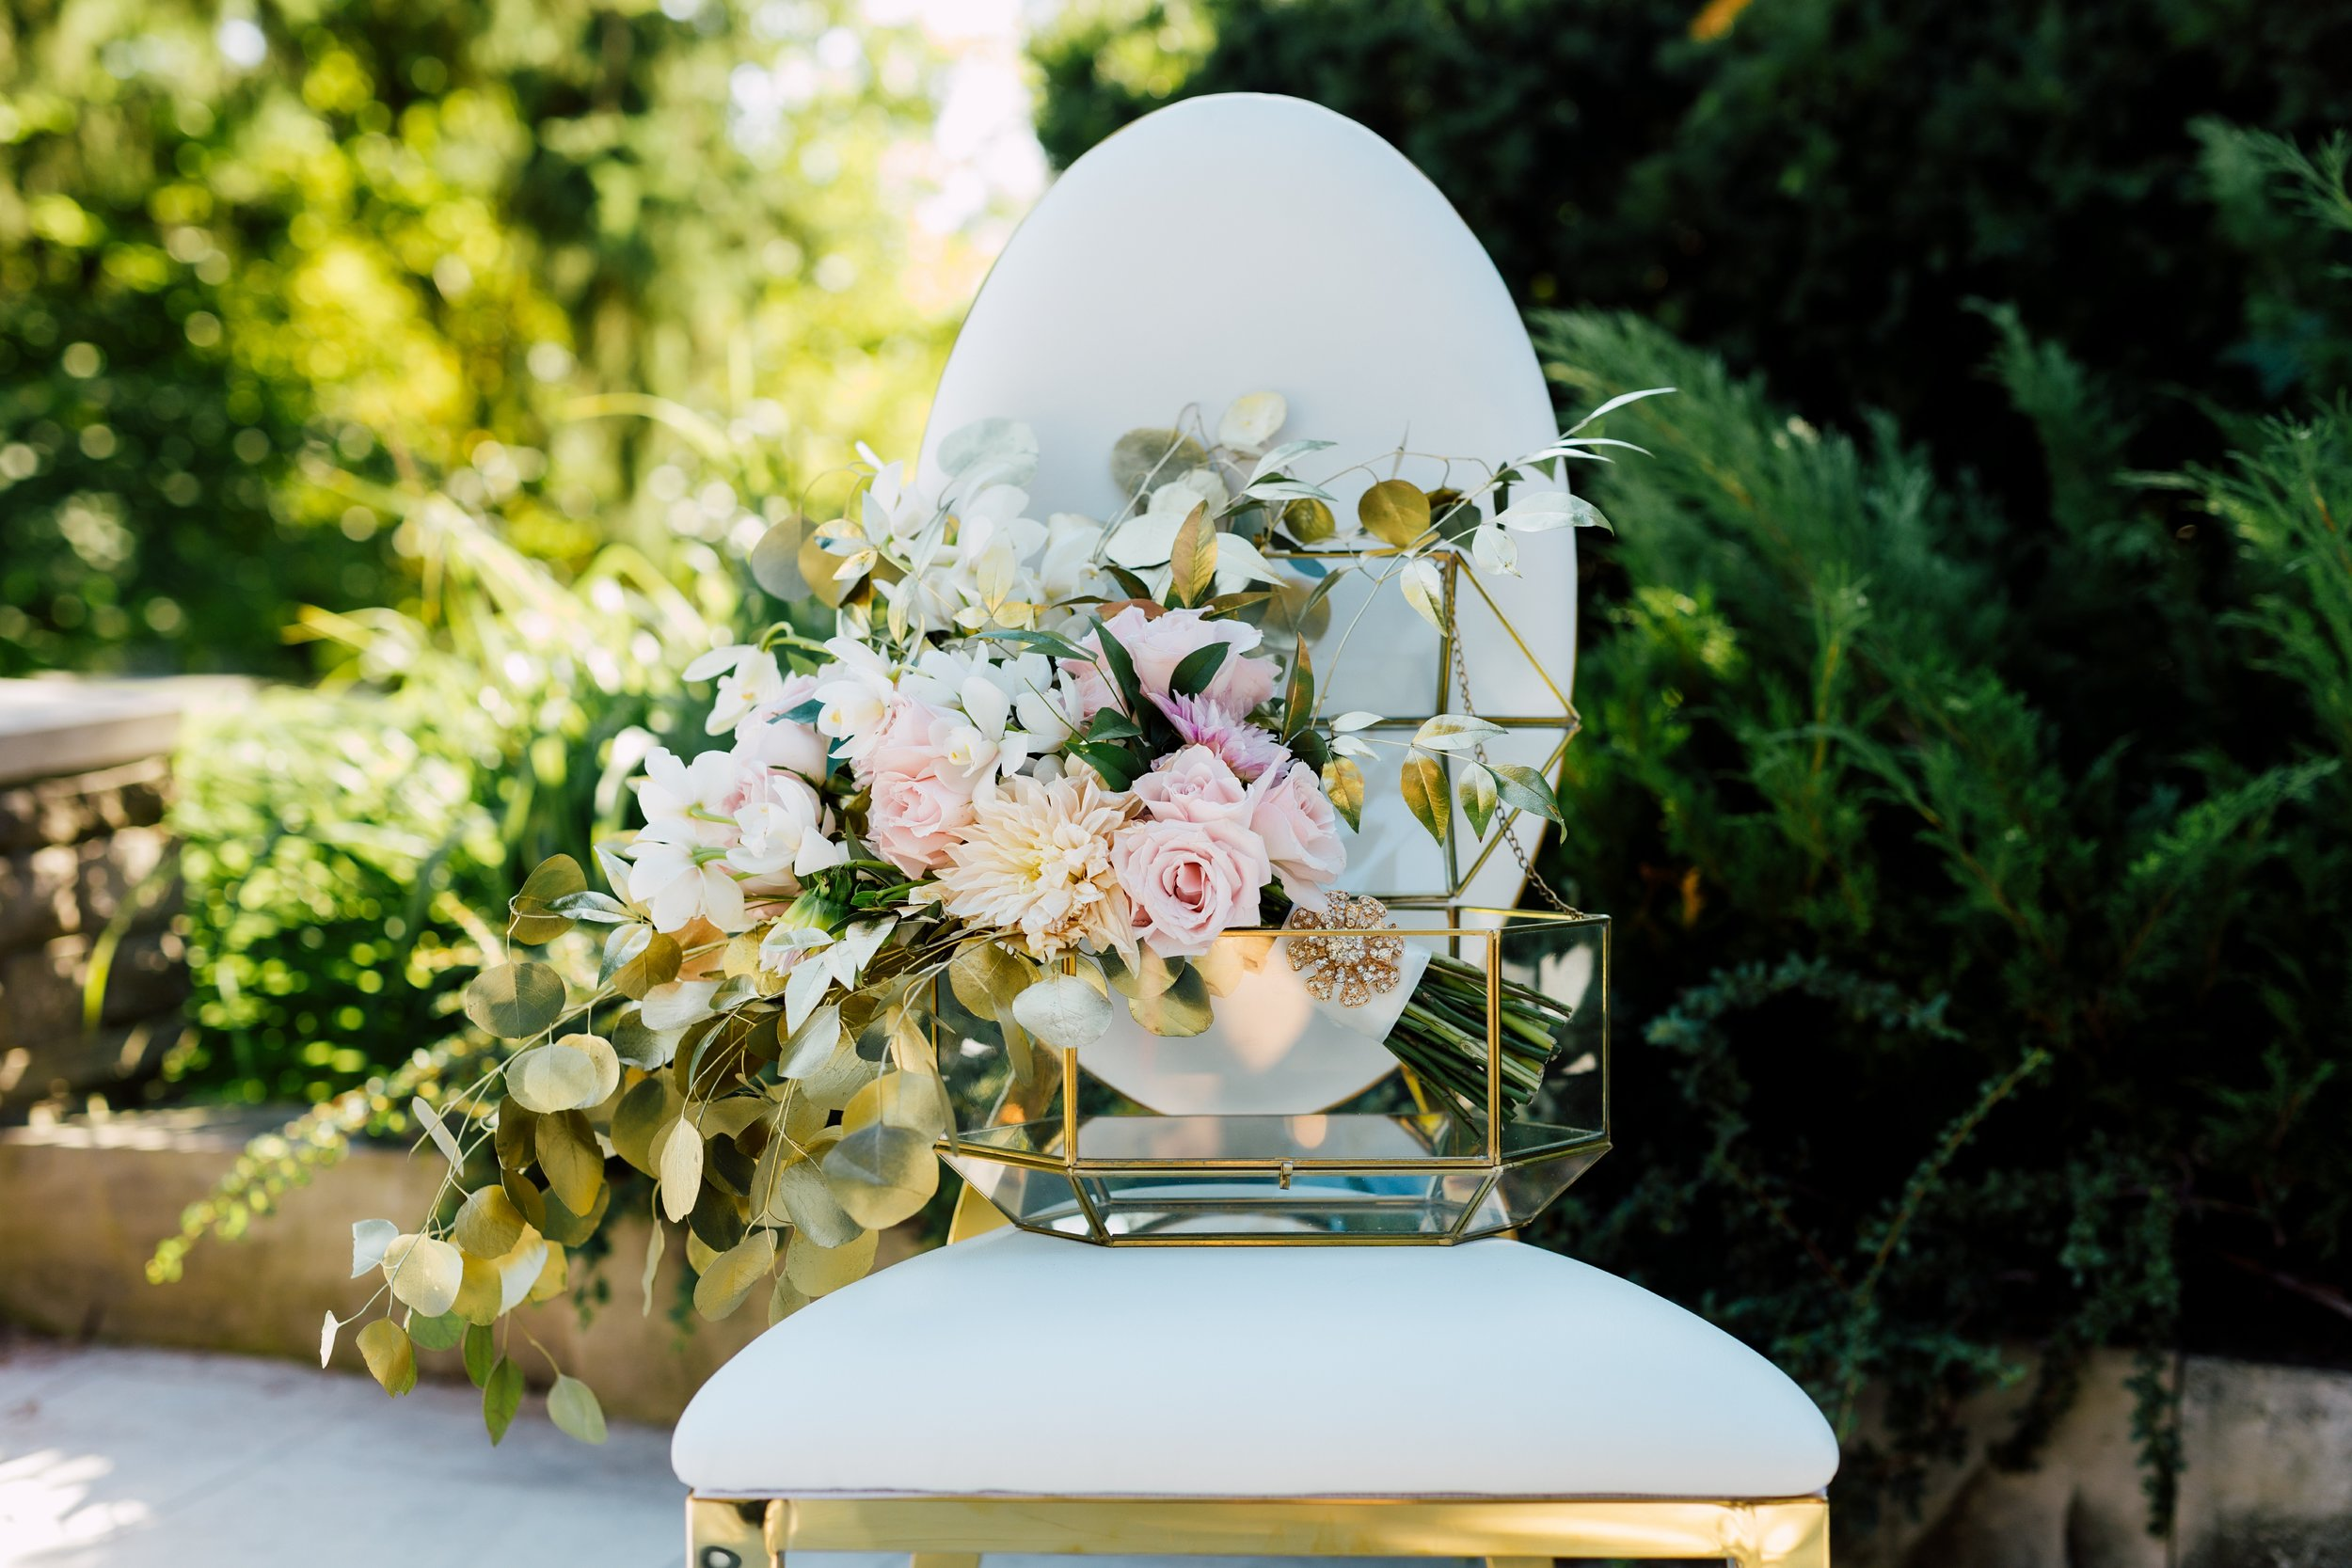 wedluxe-styled-shoot-paletta-mansion-purpletree-106.jpg